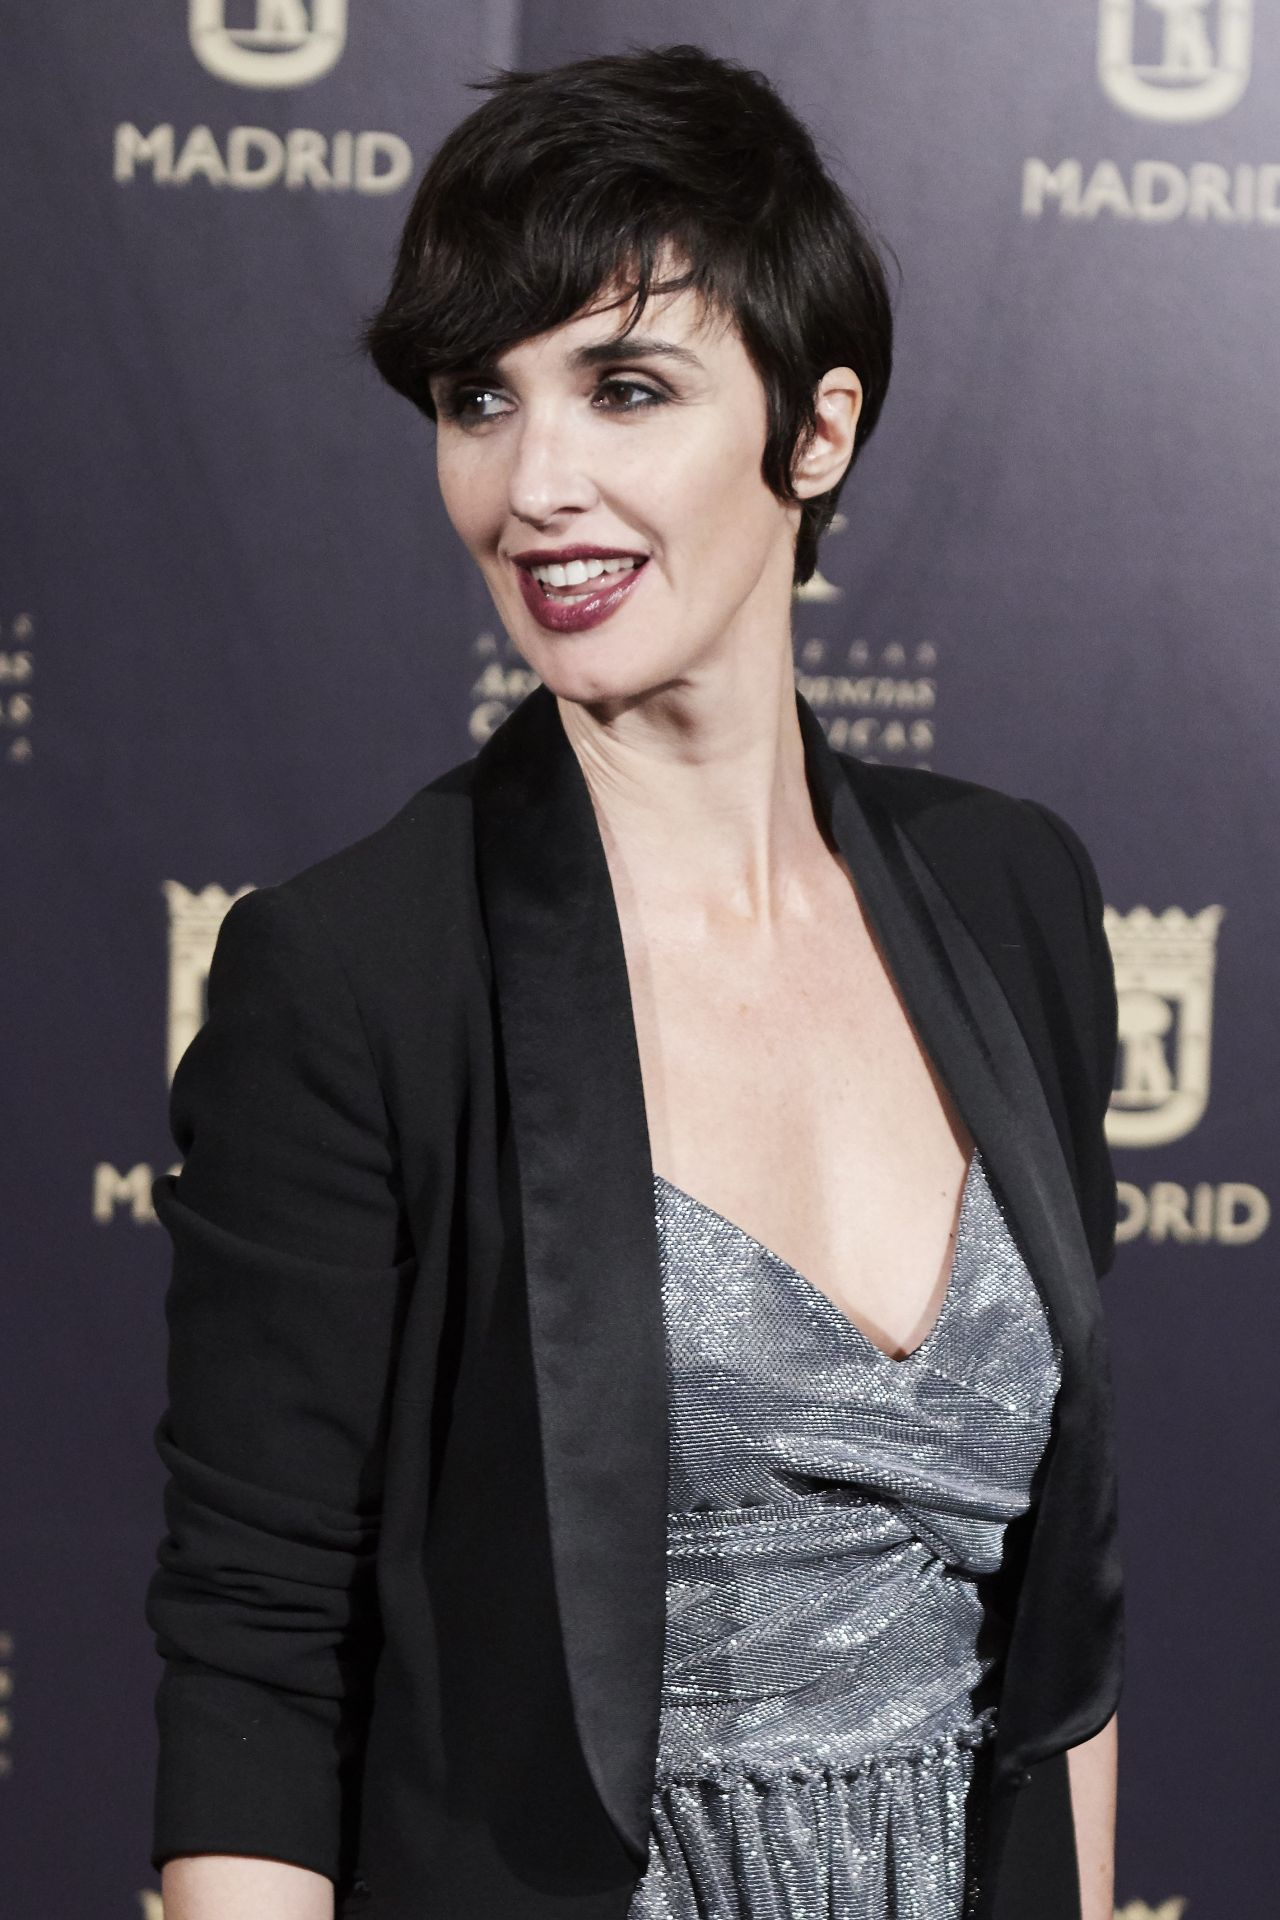 Cleavage Paz Vega  nudes (87 images), Twitter, butt